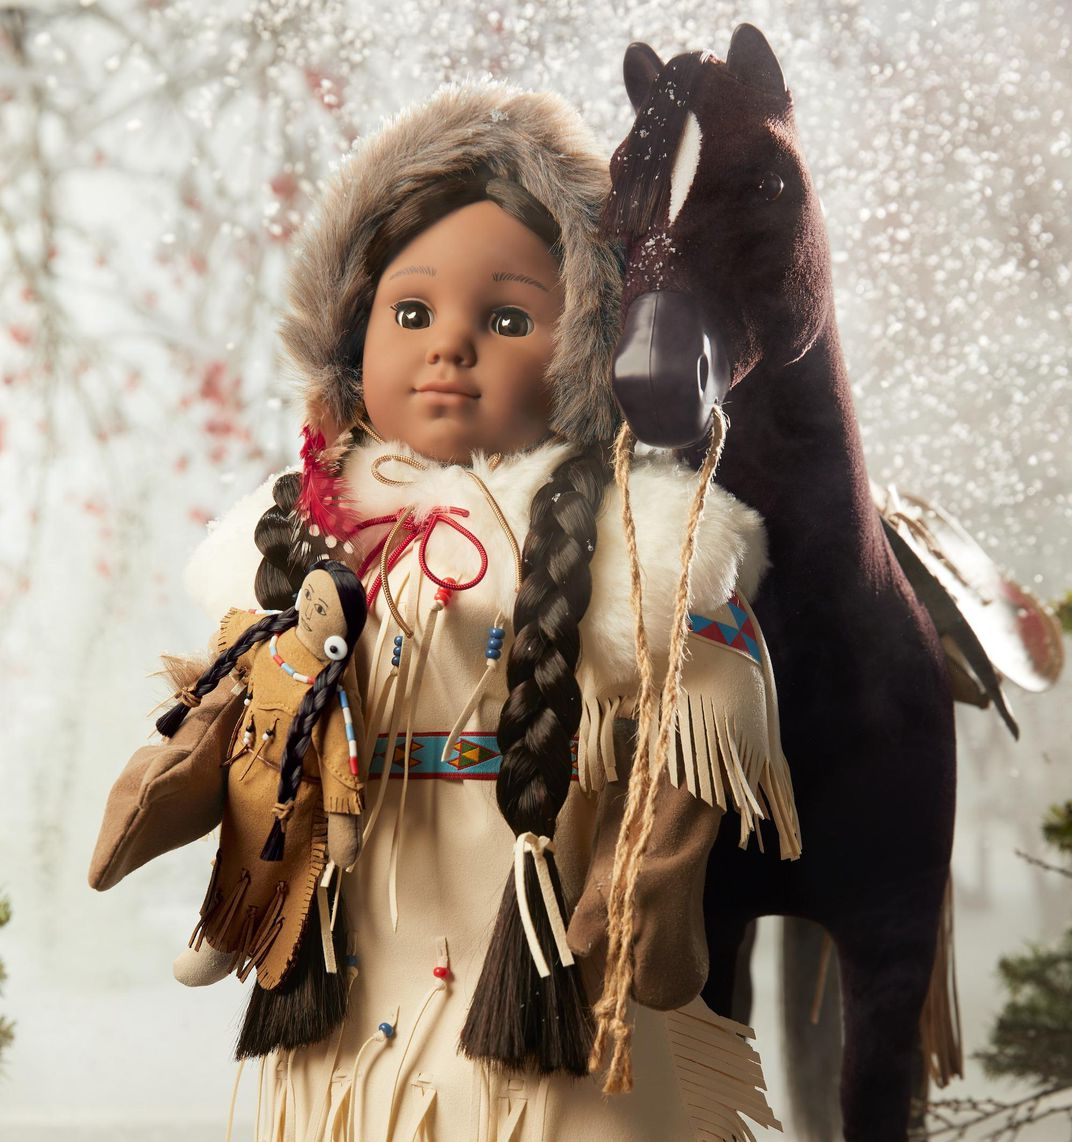 Kaya doll poses with her horse in front of a snowy backdrop